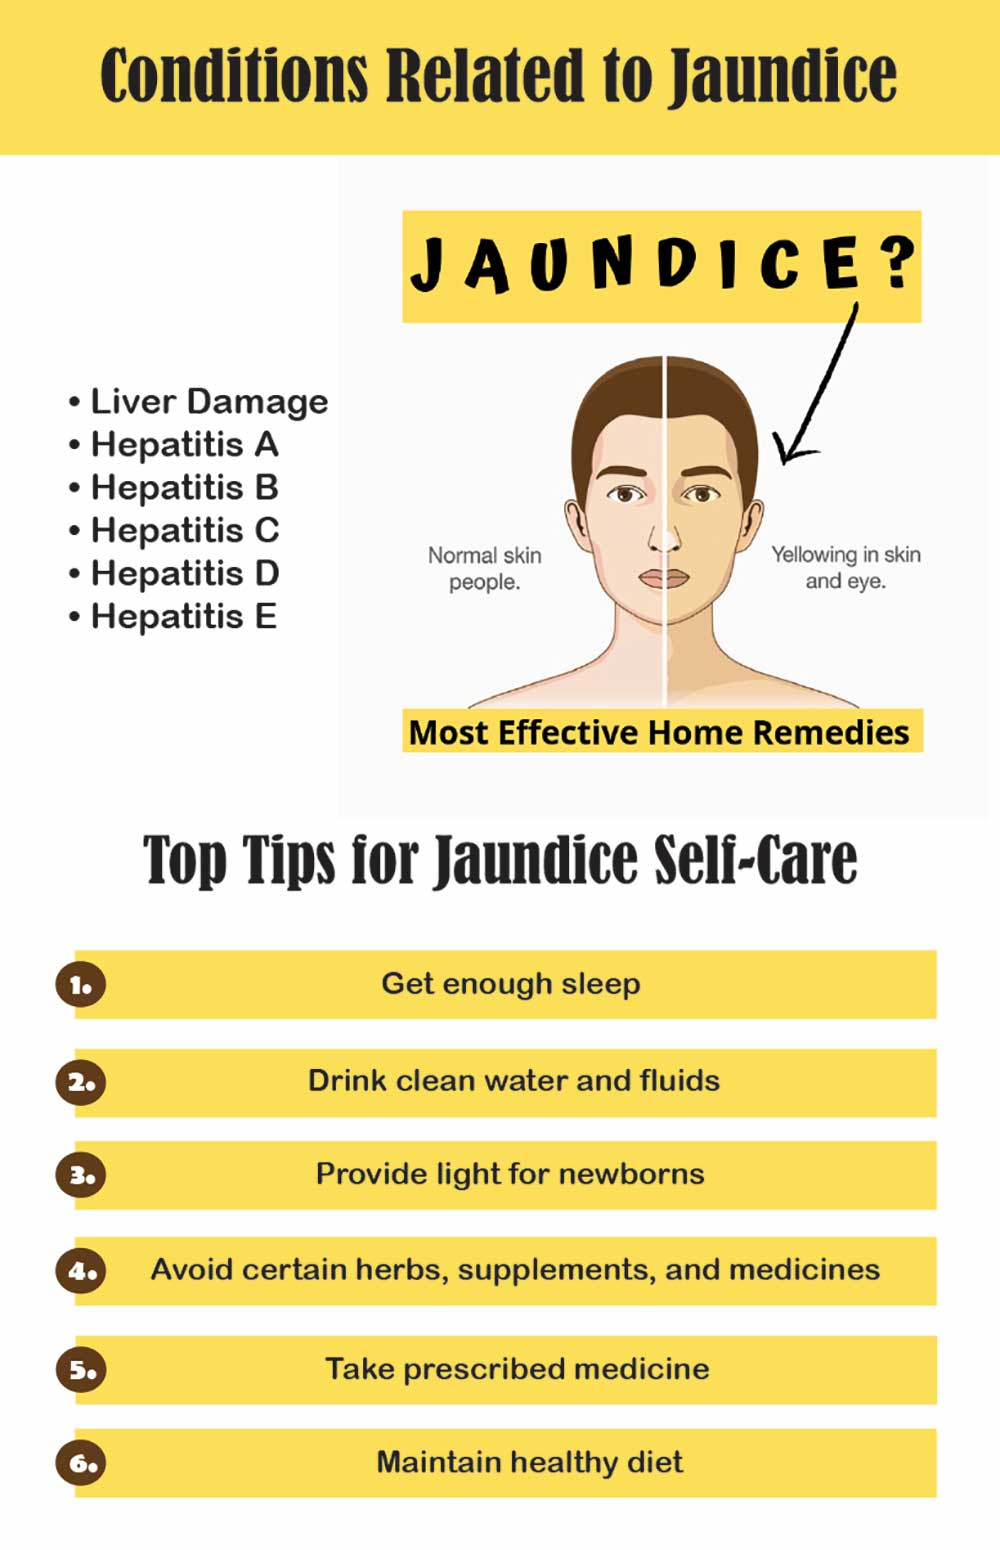 Conditions related to jaundice and self care tips